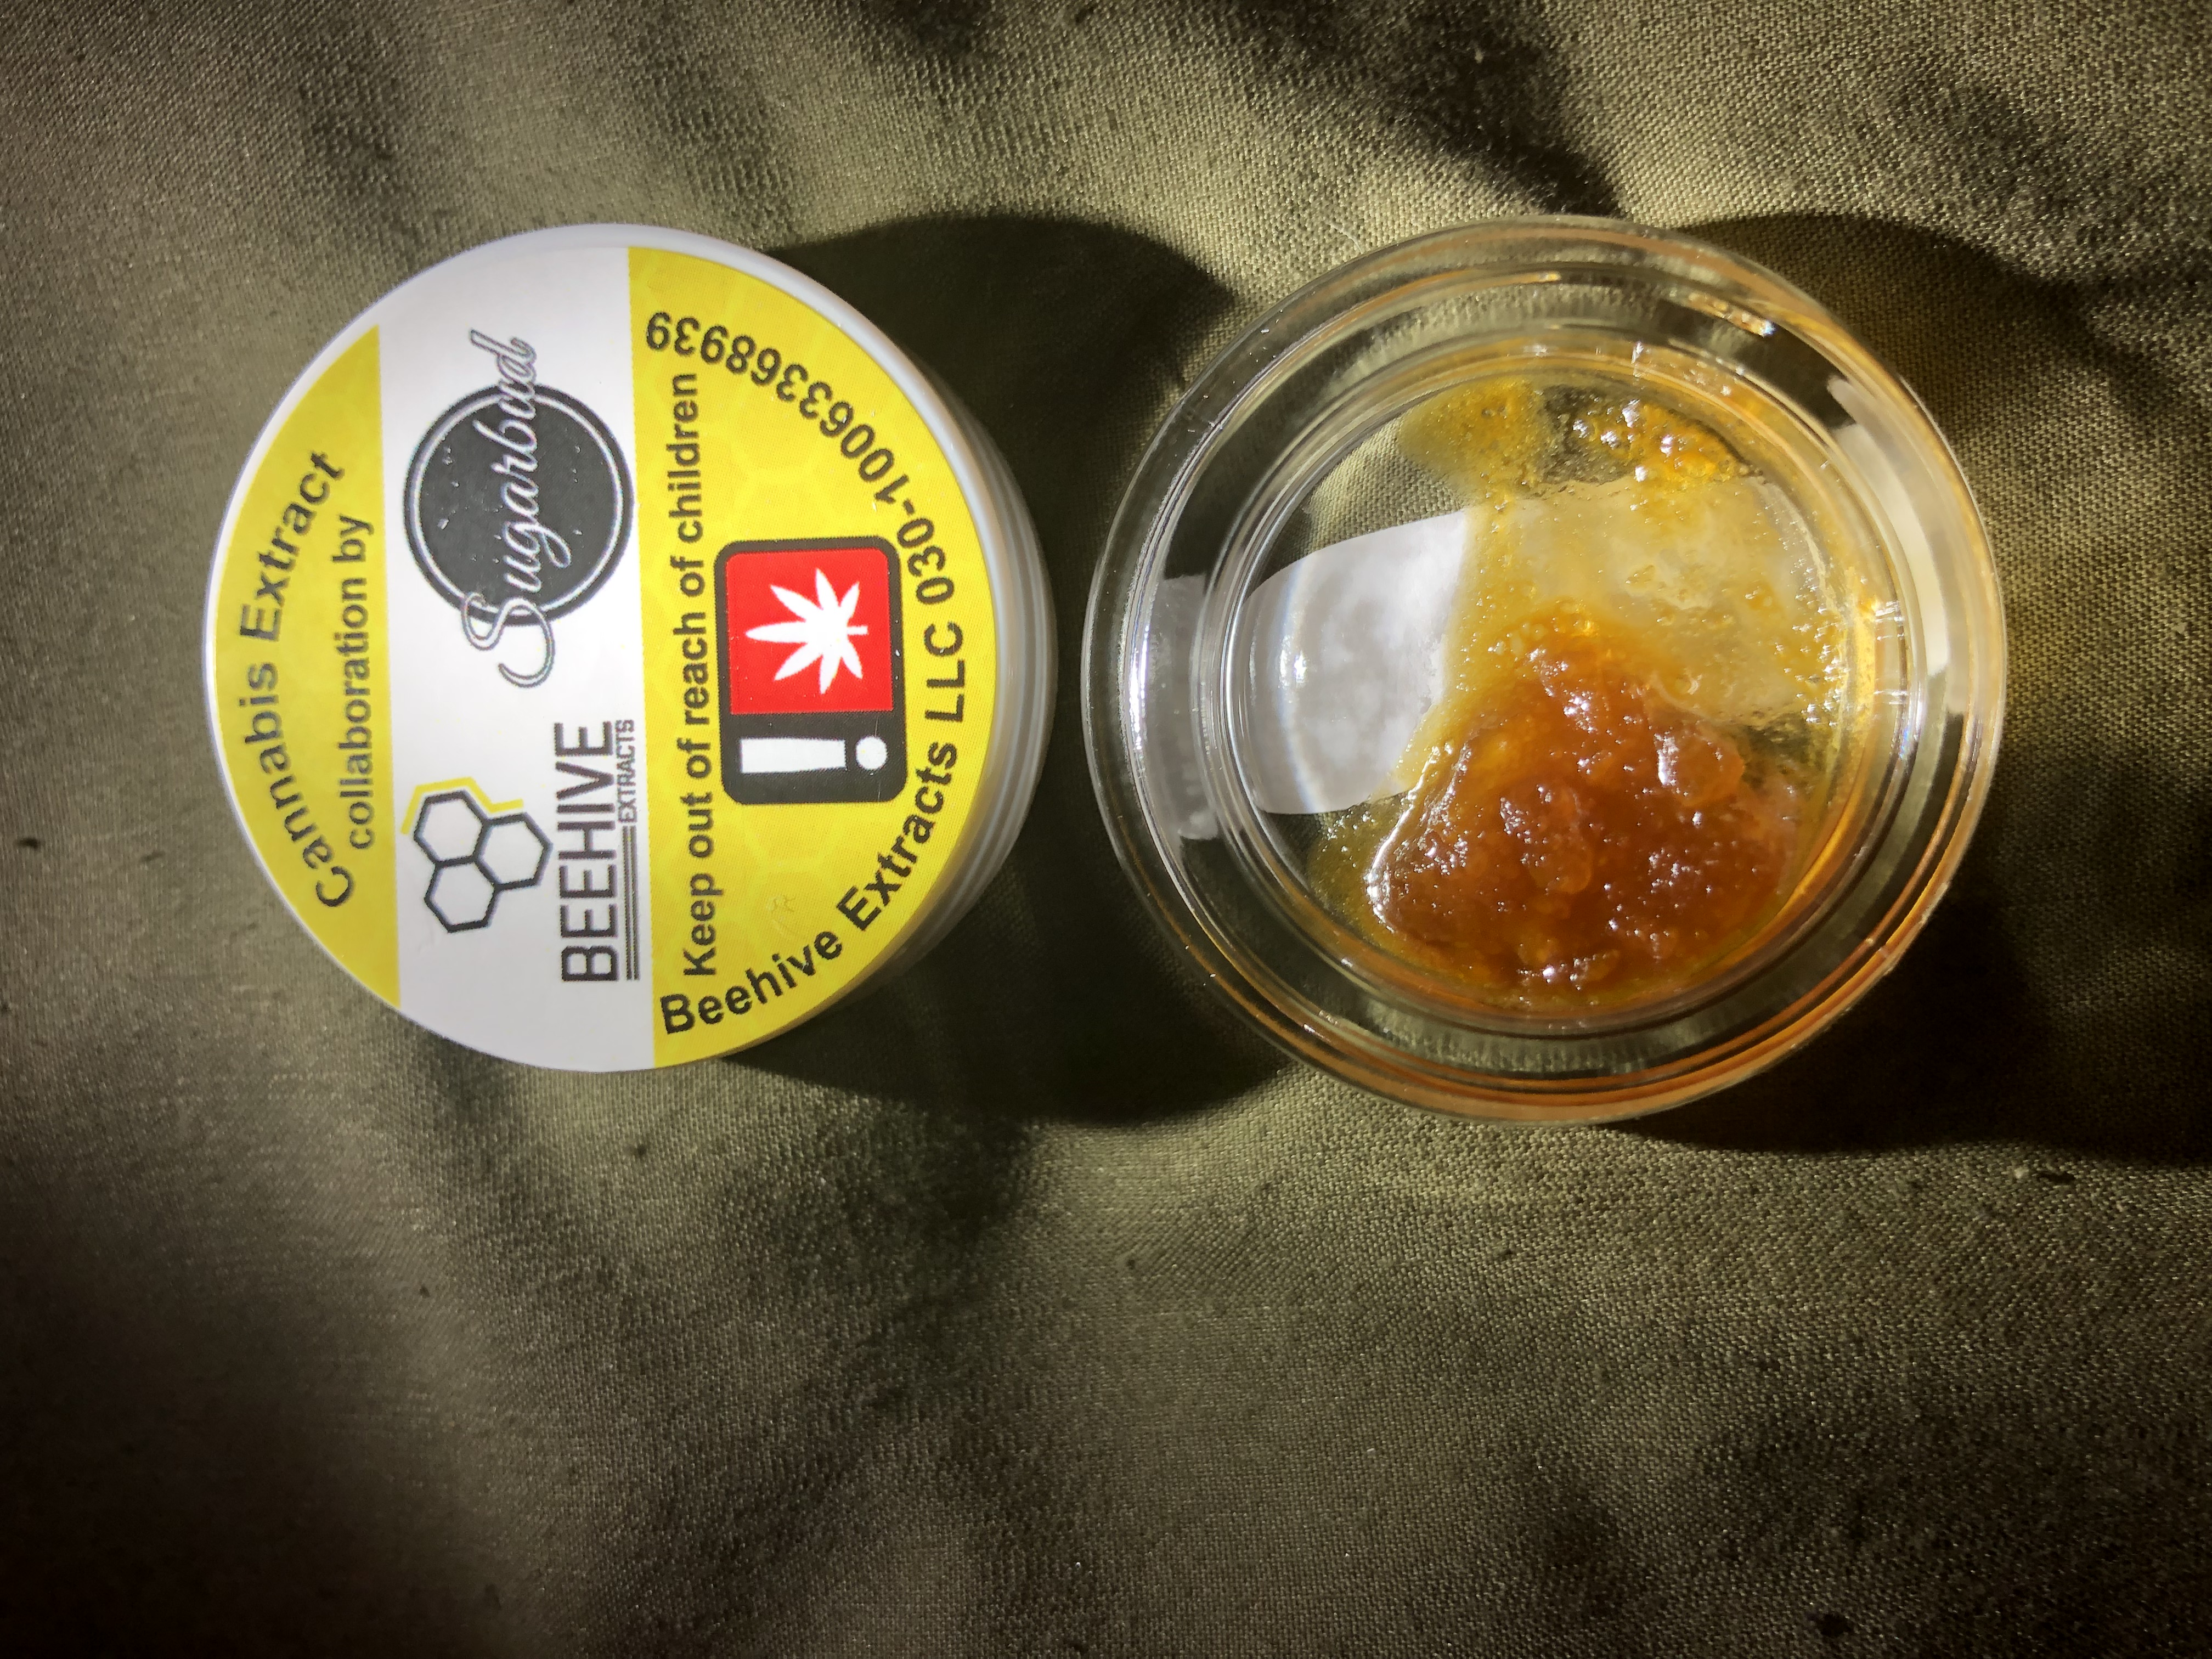 Grape Rhino Live Resin Review